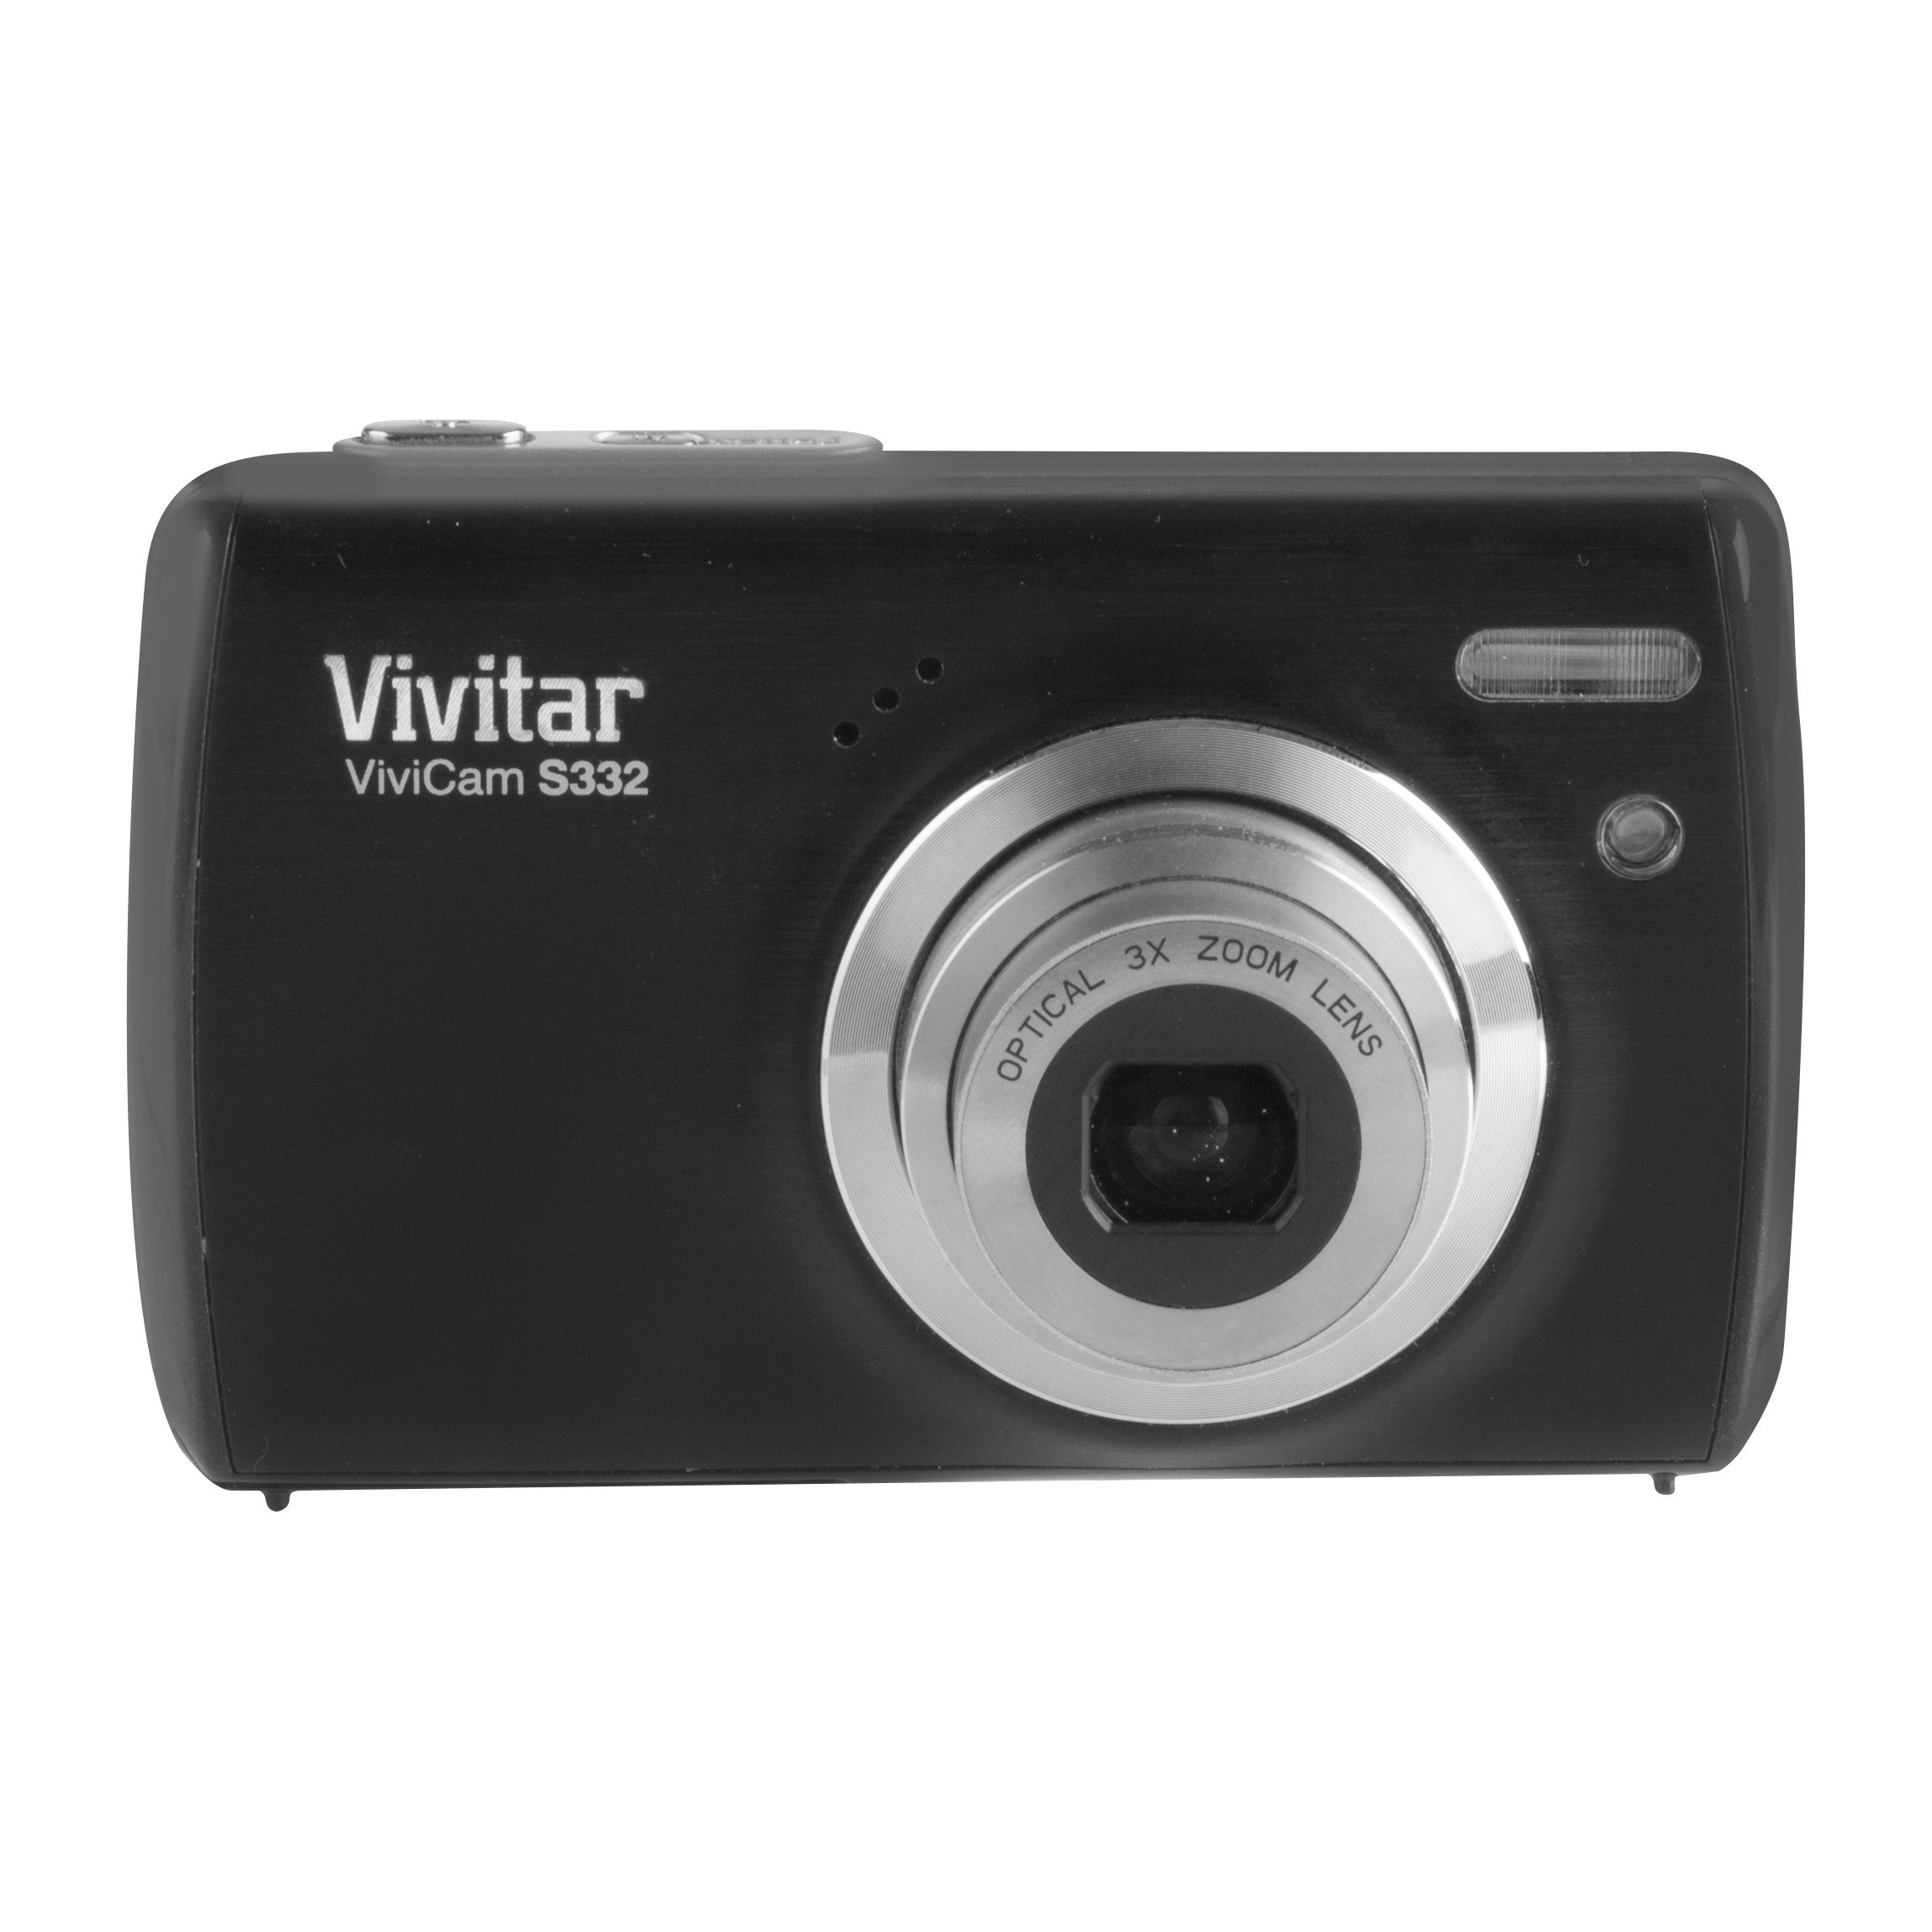 Vivitar ViviCam 12.1 MP Digital Camera, Colors/Styles May Vary